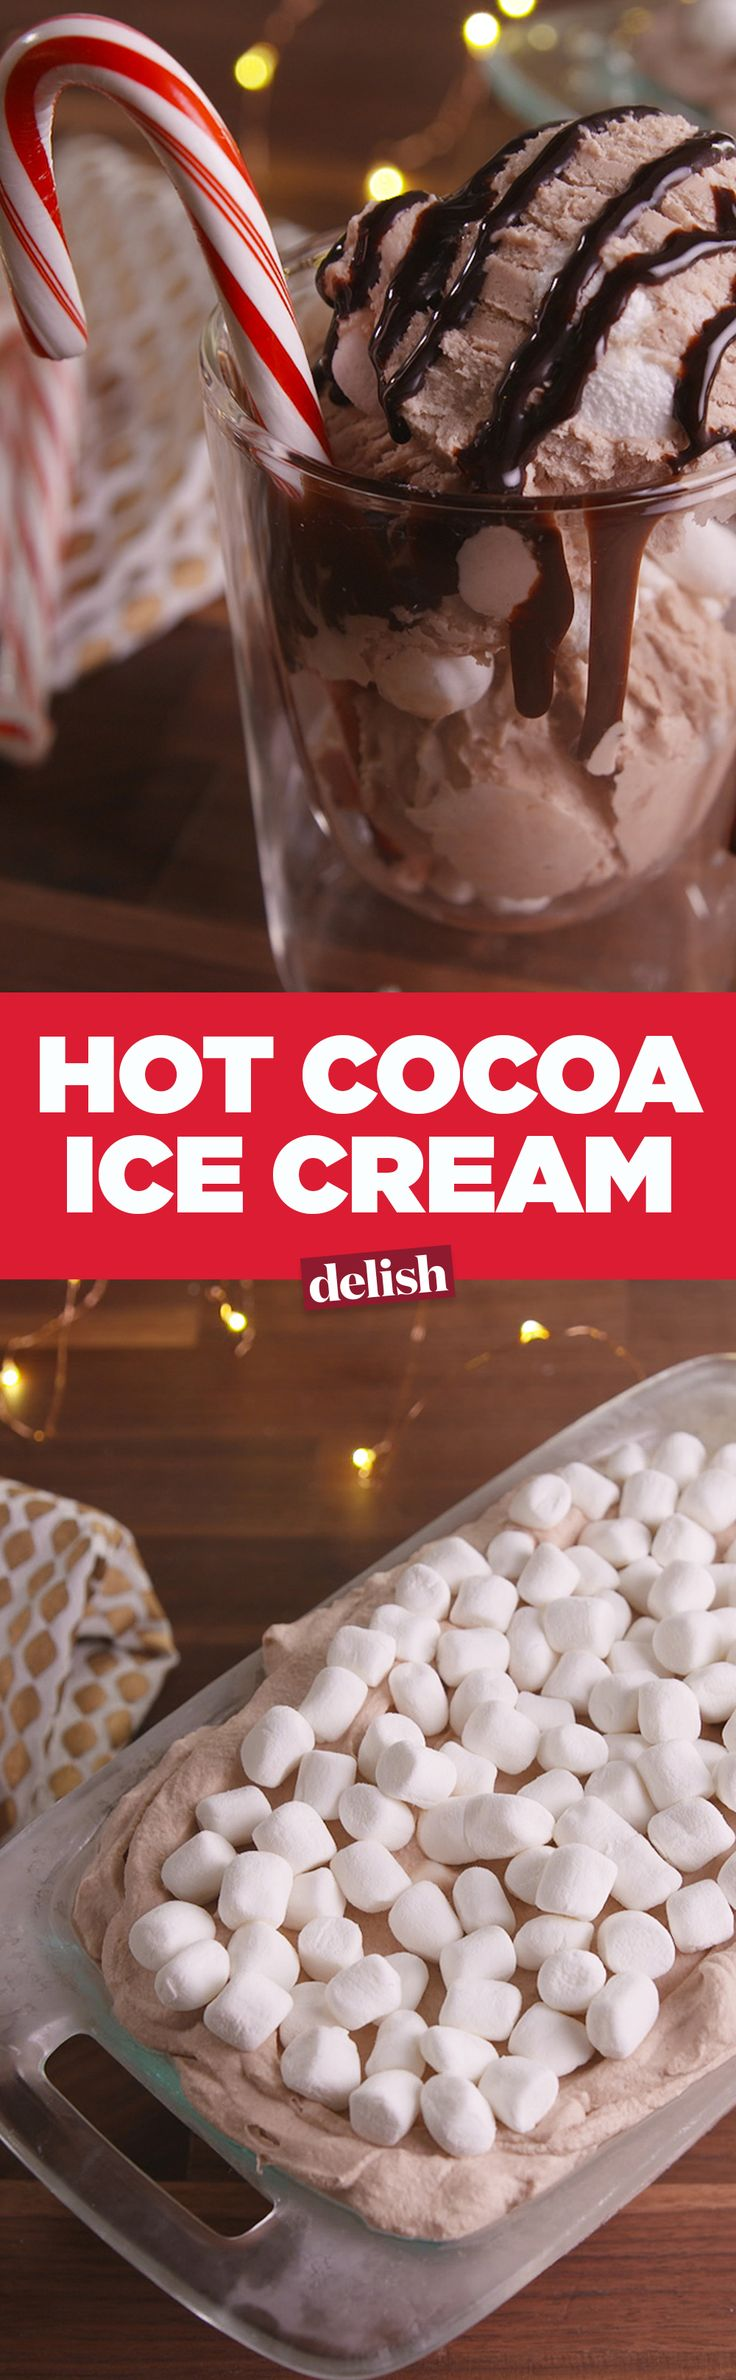 Hot Cocoa Ice Cream is breaking the internet. Get the recipe on Delish.com.